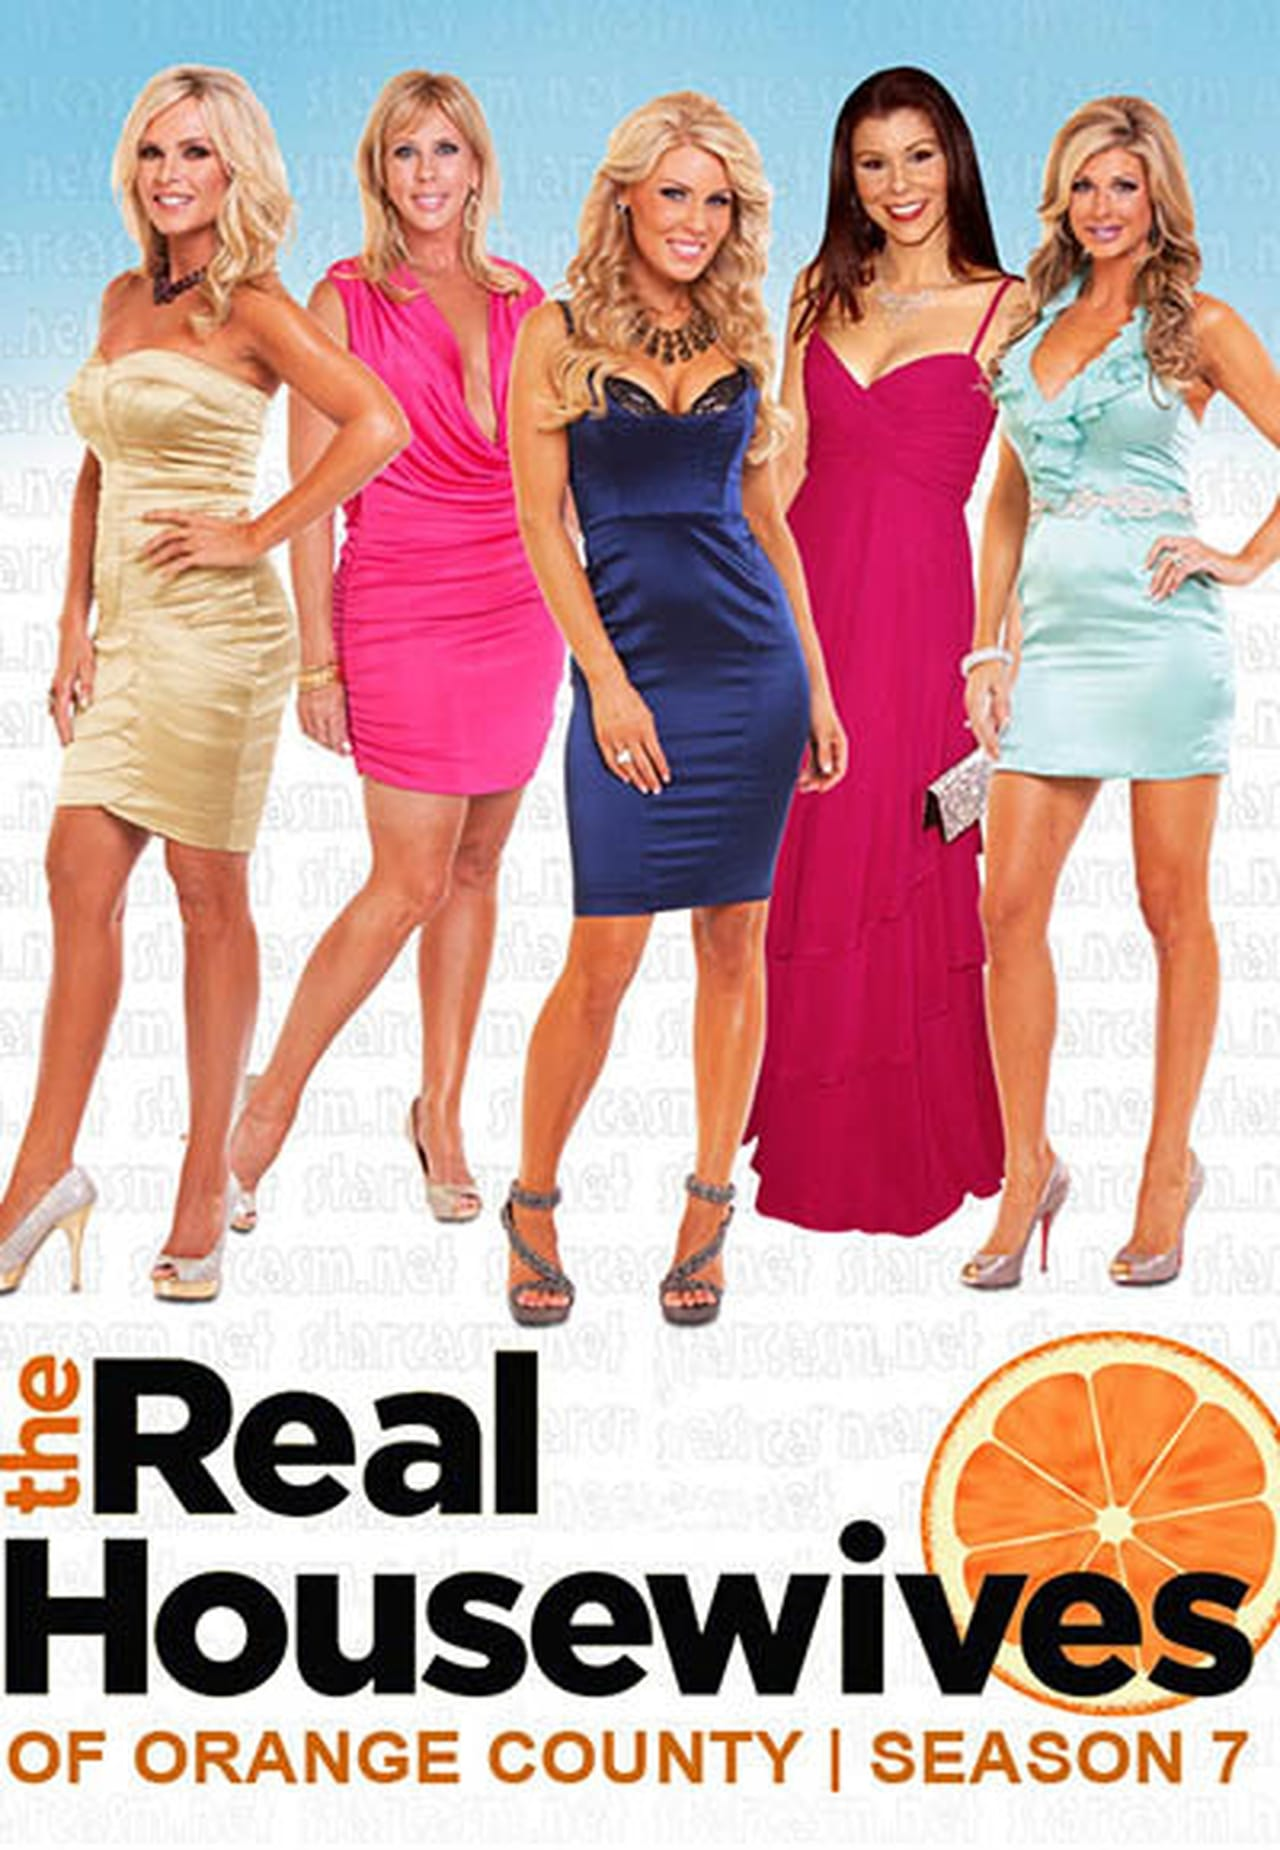 Putlocker The Real Housewives Of Orange County Season 7 (2012)